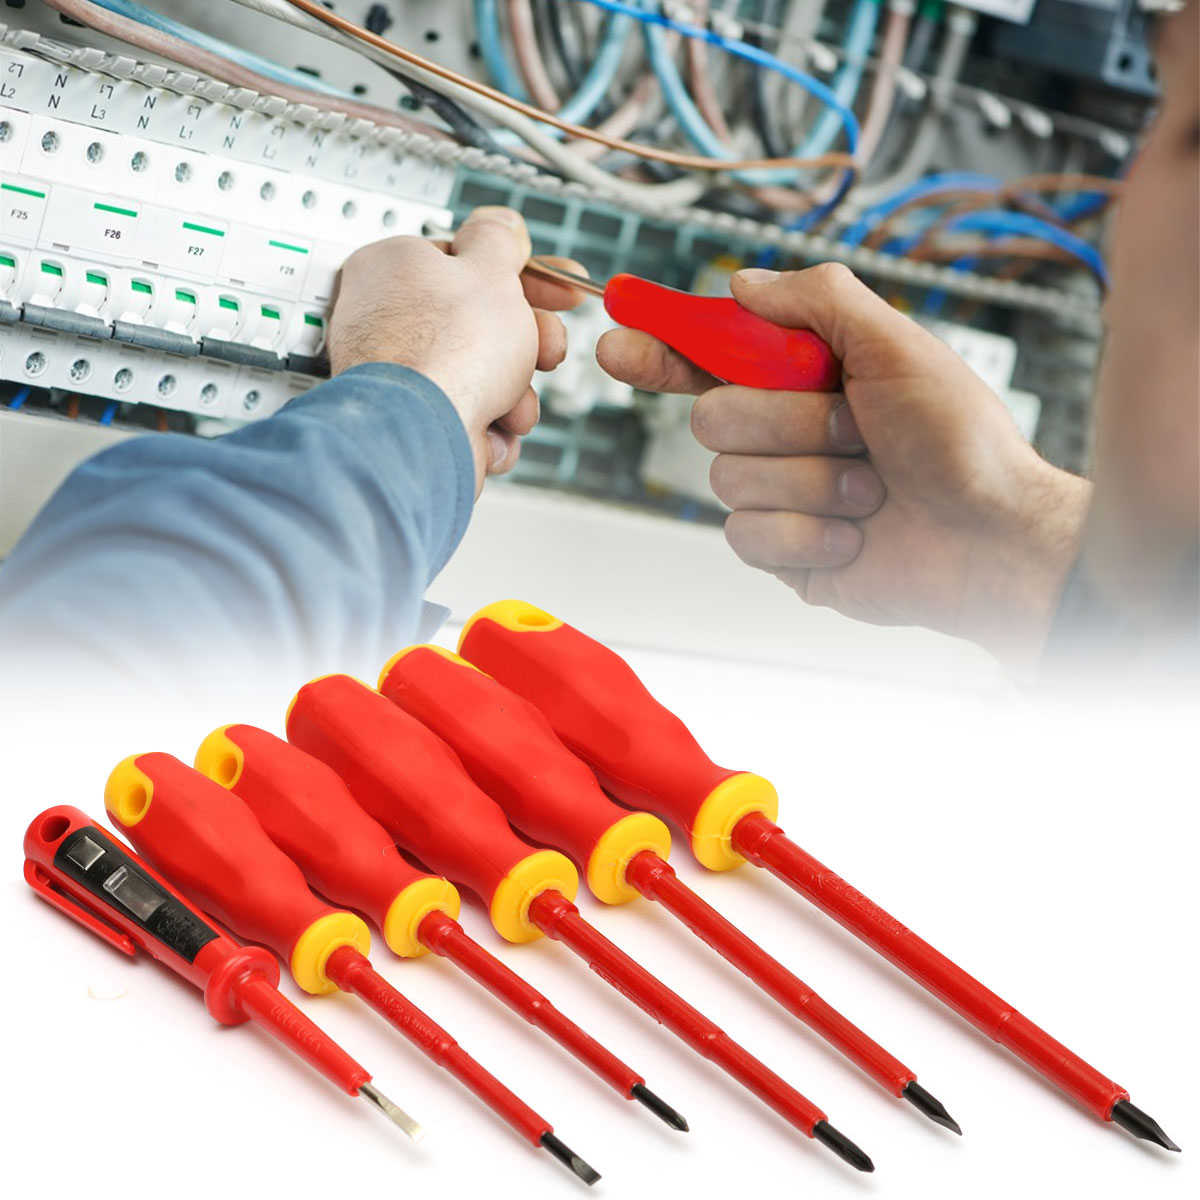 6PCS Electricians Insulated Electrical Hand Screwdrivers Set Tool 1000V Power